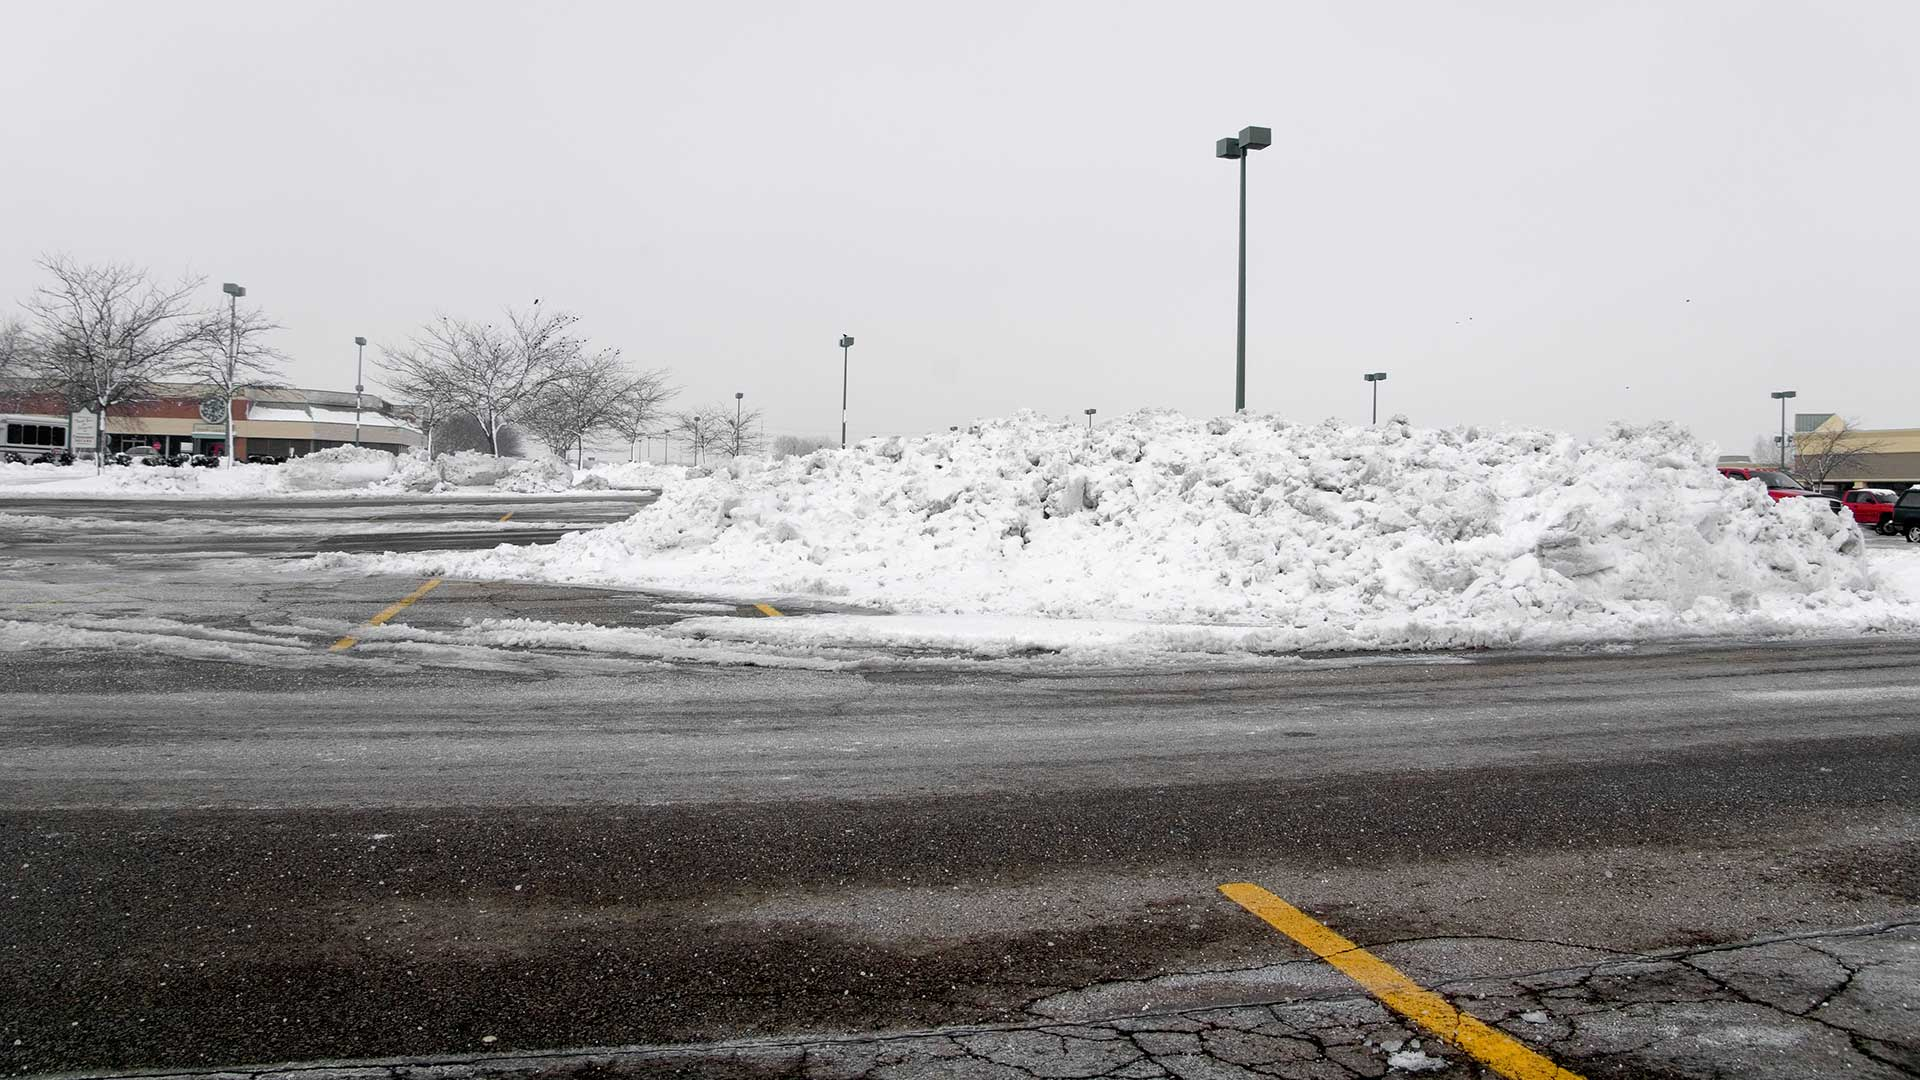 A parking lot in Waterloo, IL where we cleared and piled up snow.